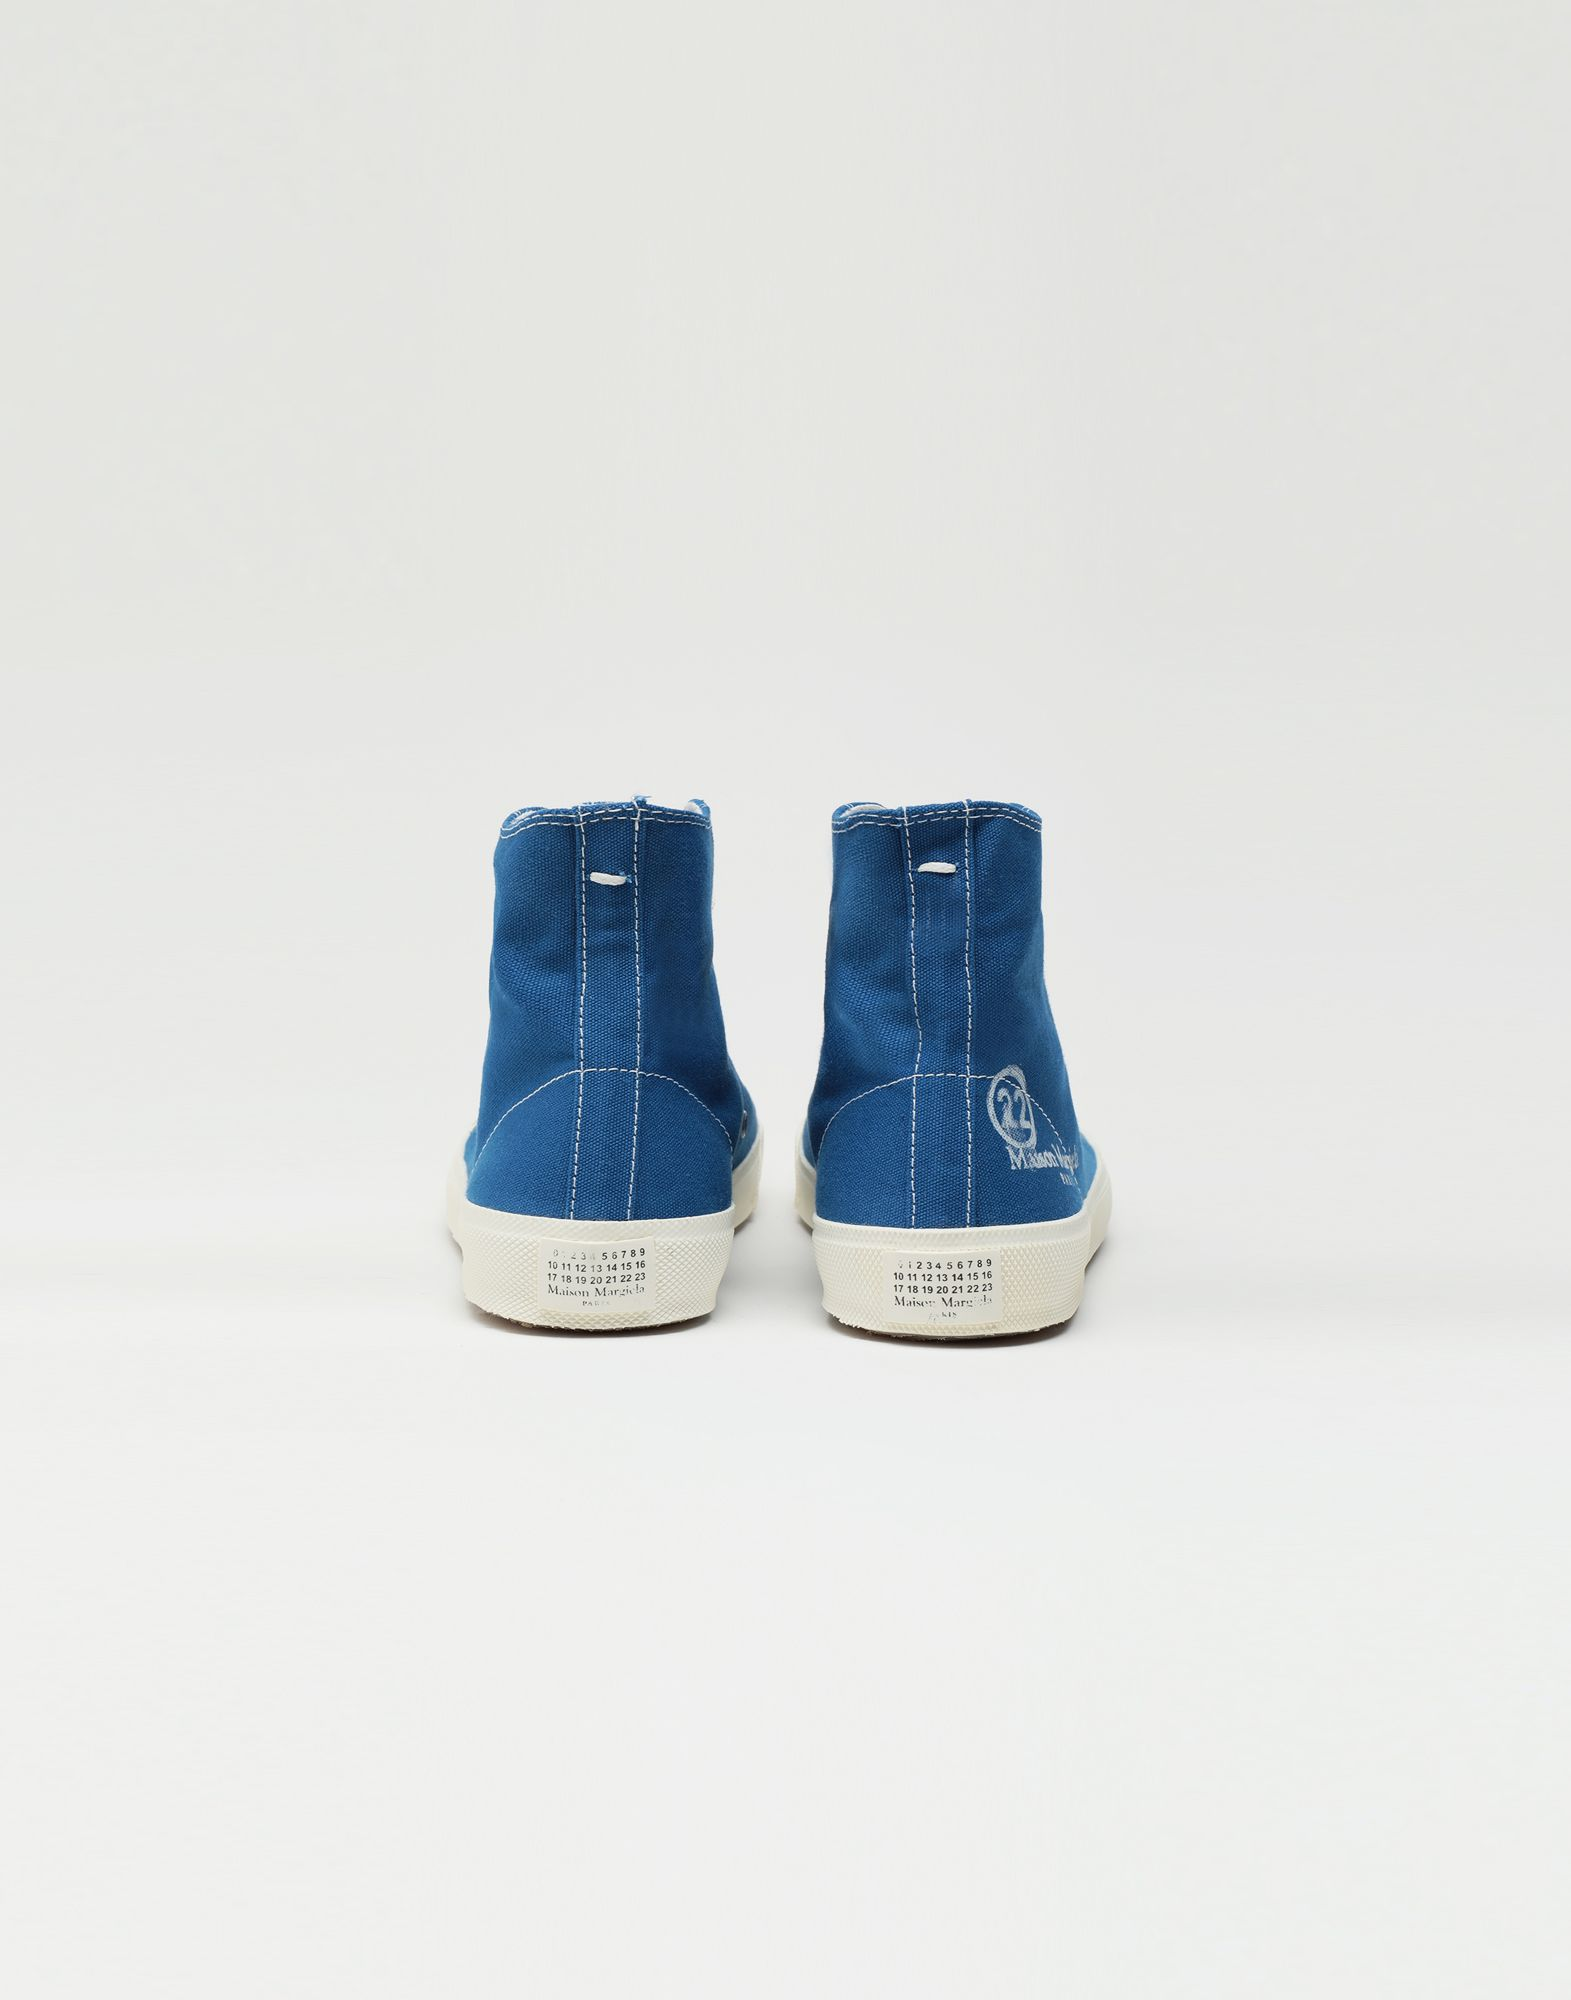 MAISON MARGIELA Tabi high top canvas sneakers Sneakers Tabi Woman d